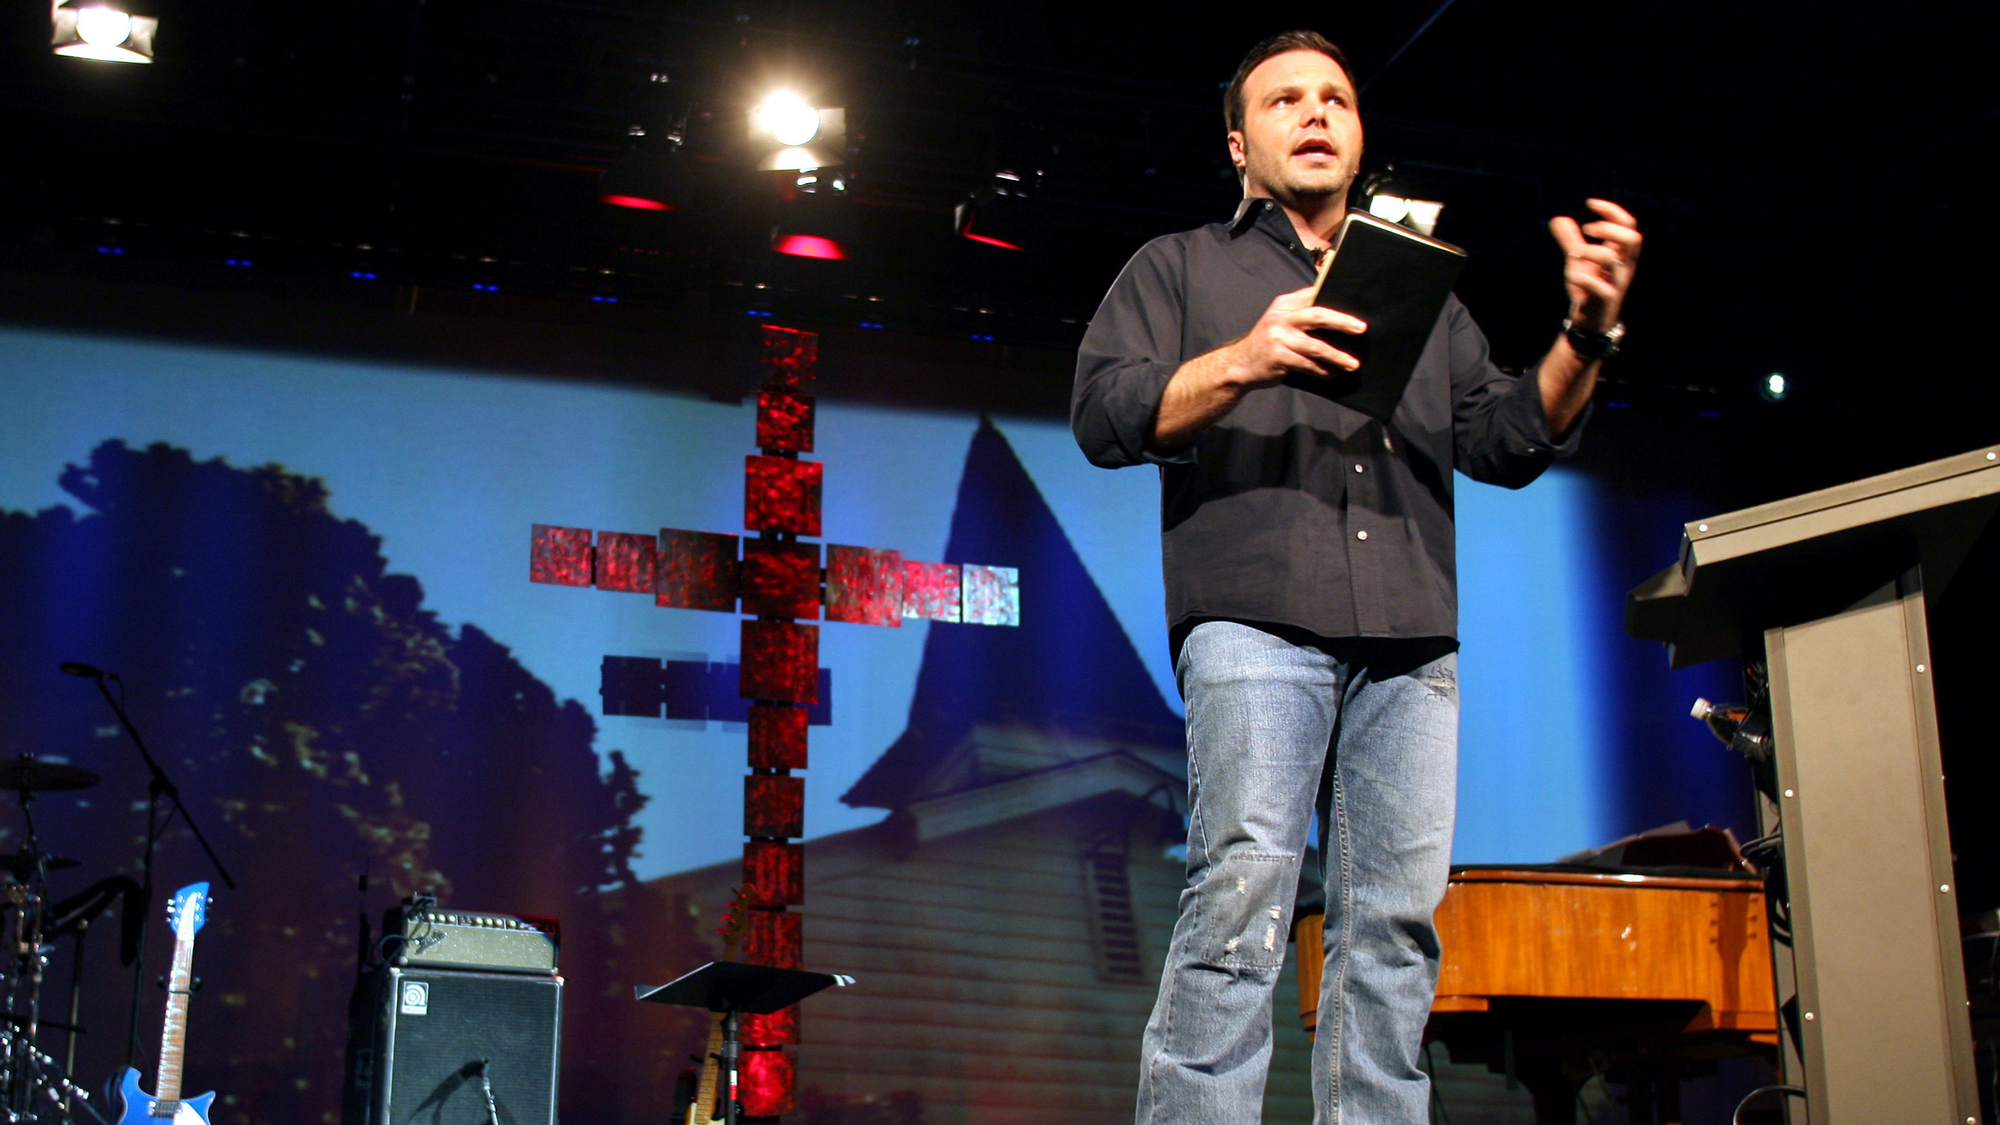 Acts 29 Removes Mars Hill Asks Mark Driscoll To Step Down